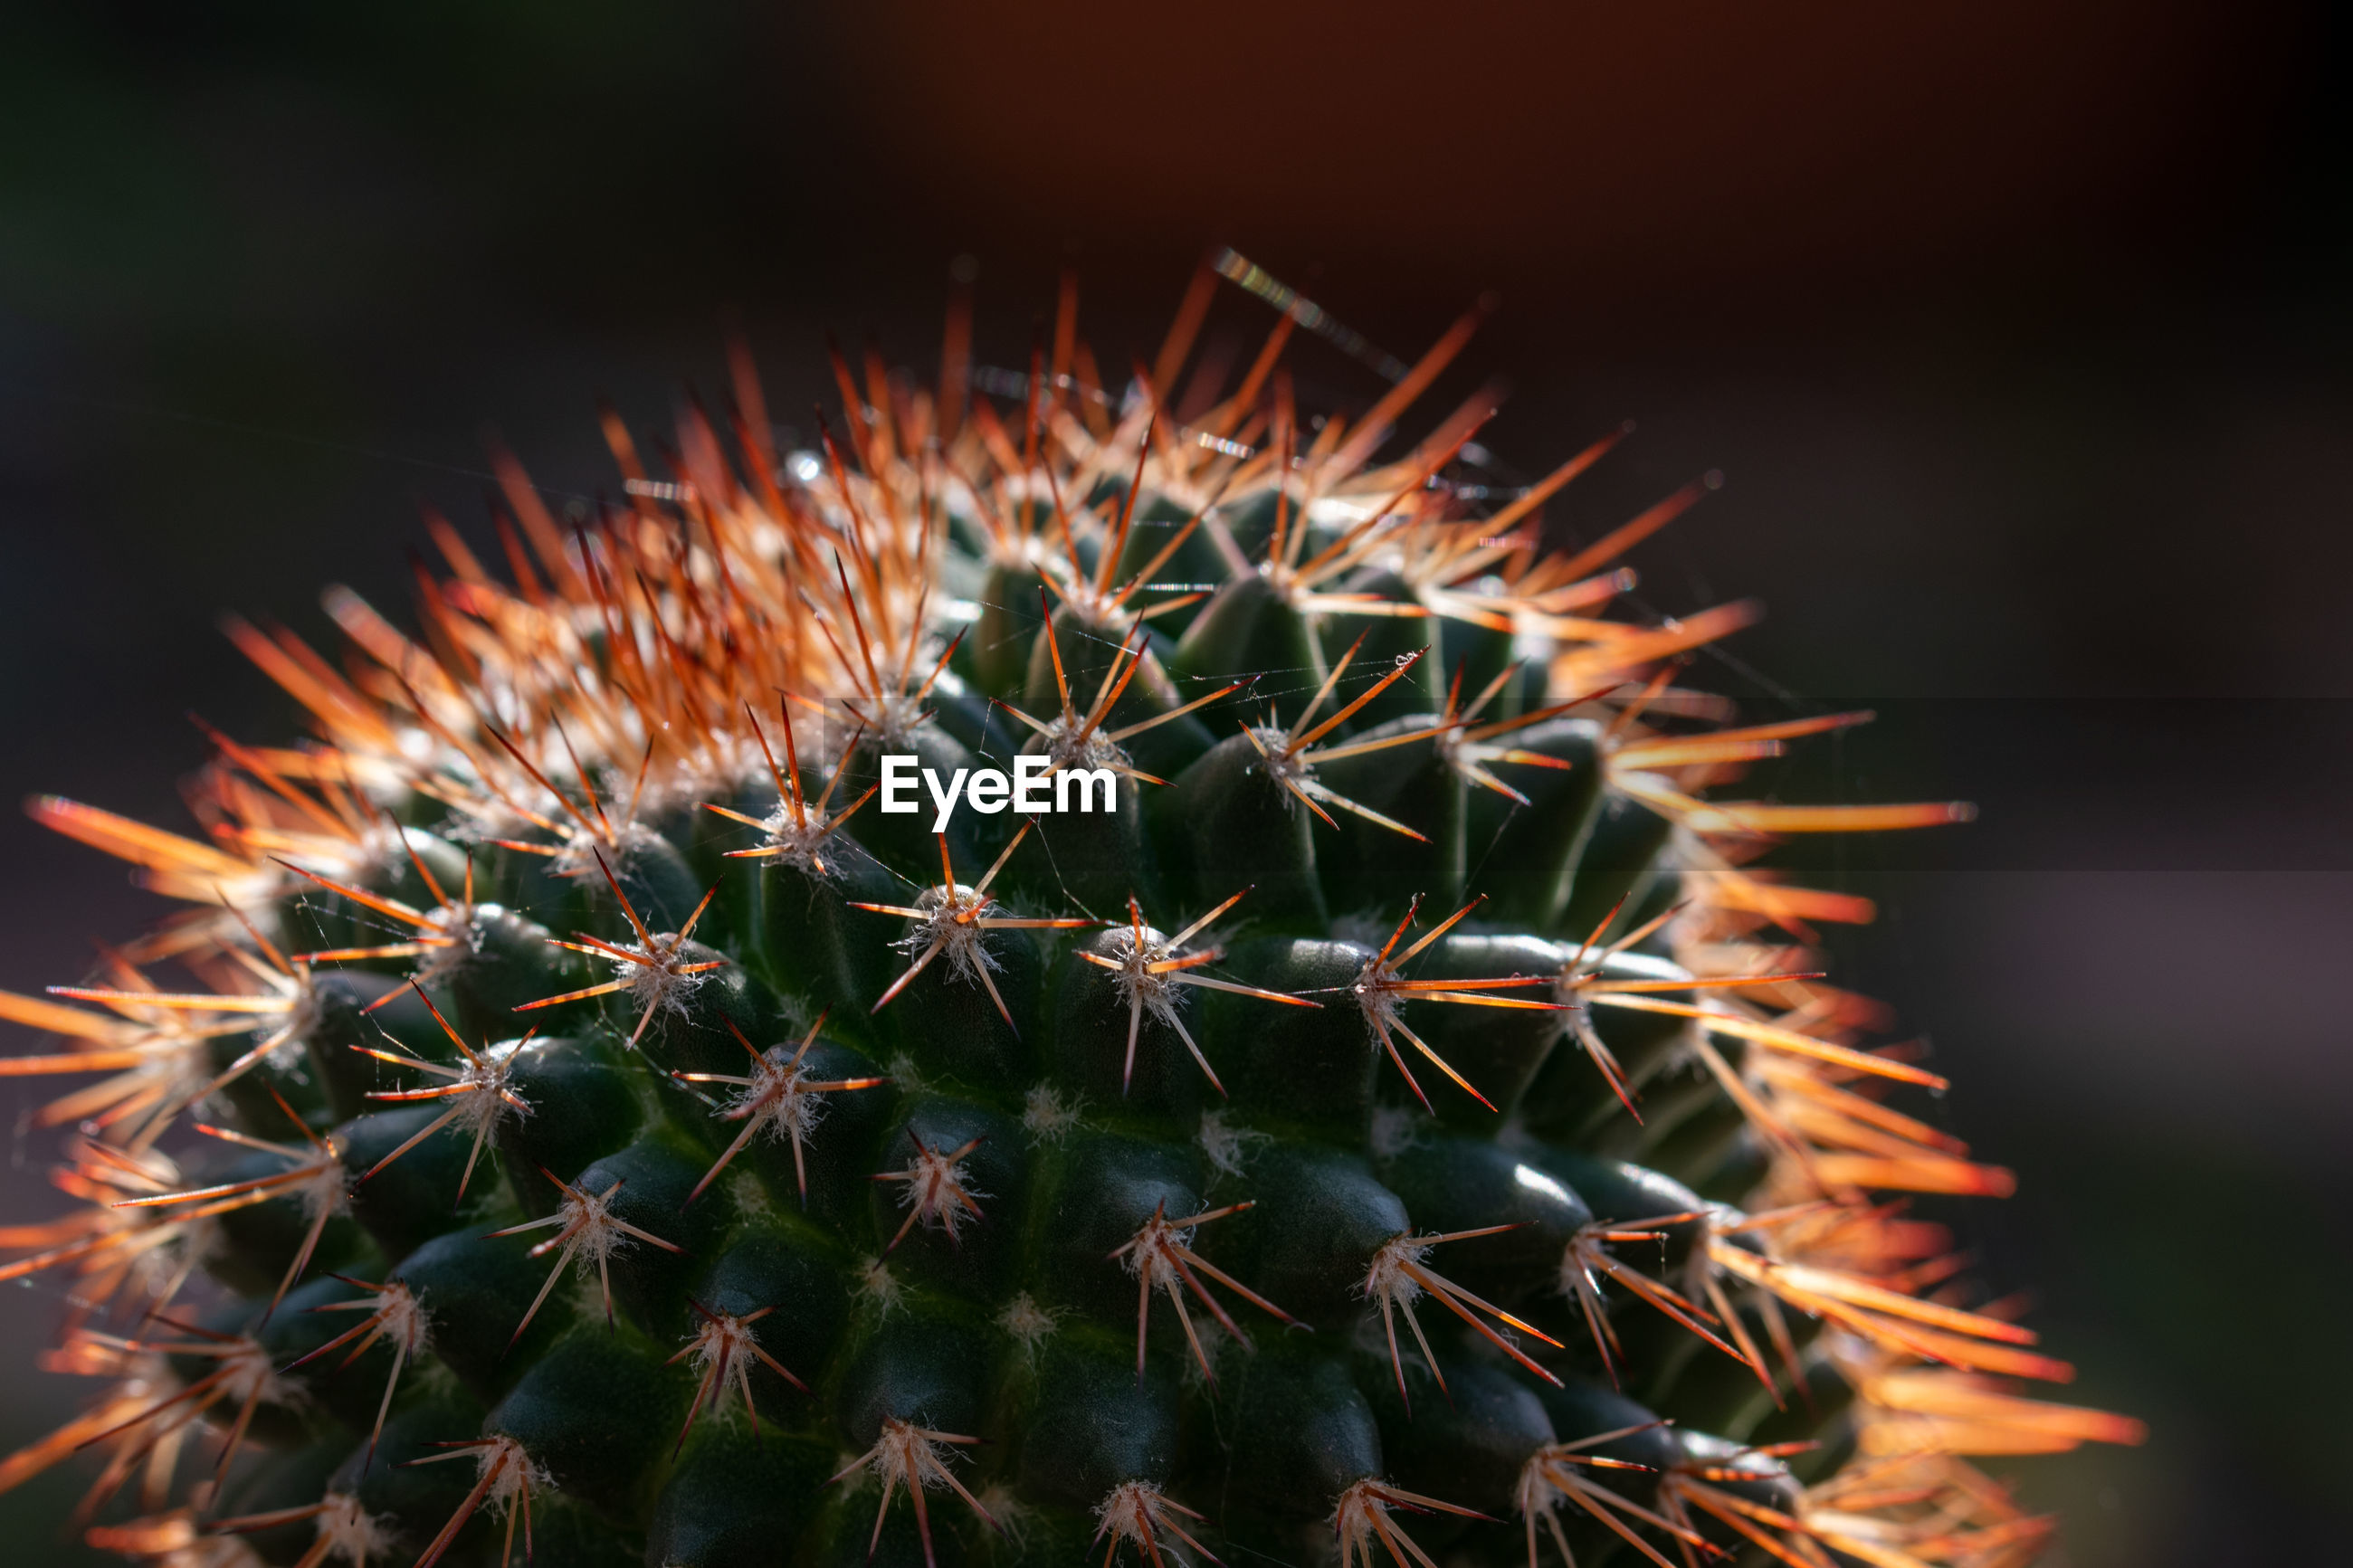 CLOSE-UP OF CACTUS PLANT WITH TEXT